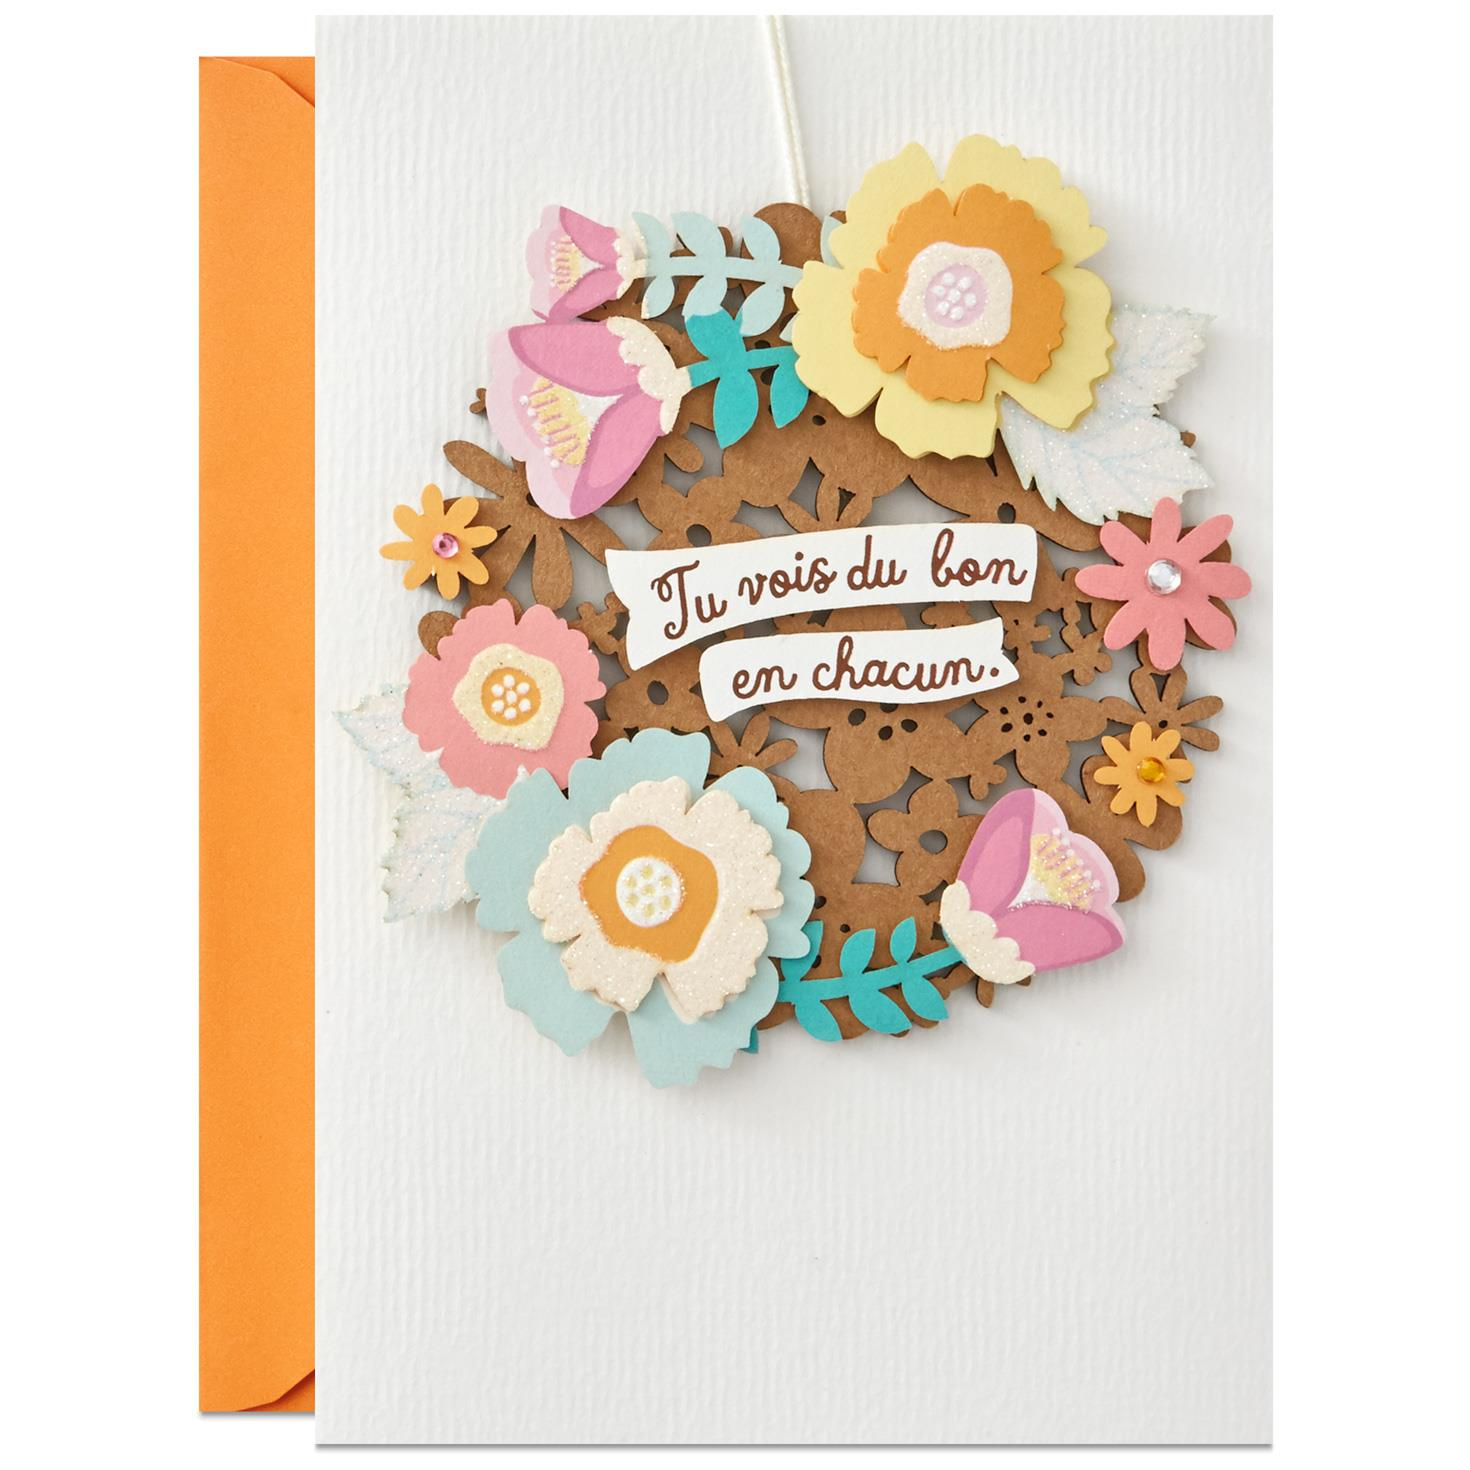 You See The Good In Everyone French Language Birthday Card